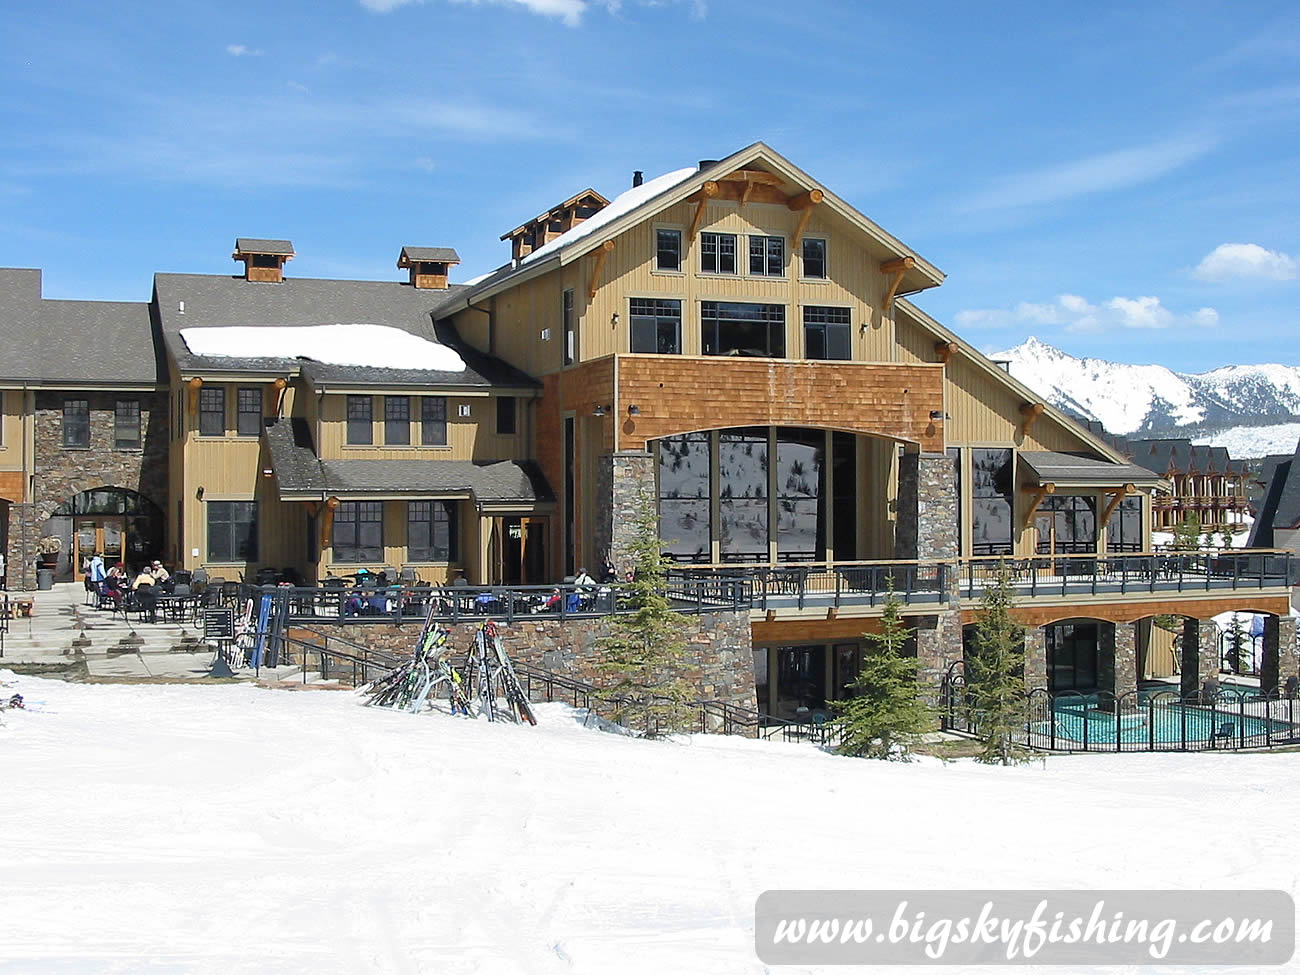 Big sky montana vacations alltrips rachael edwards for Big sky cabin rentals